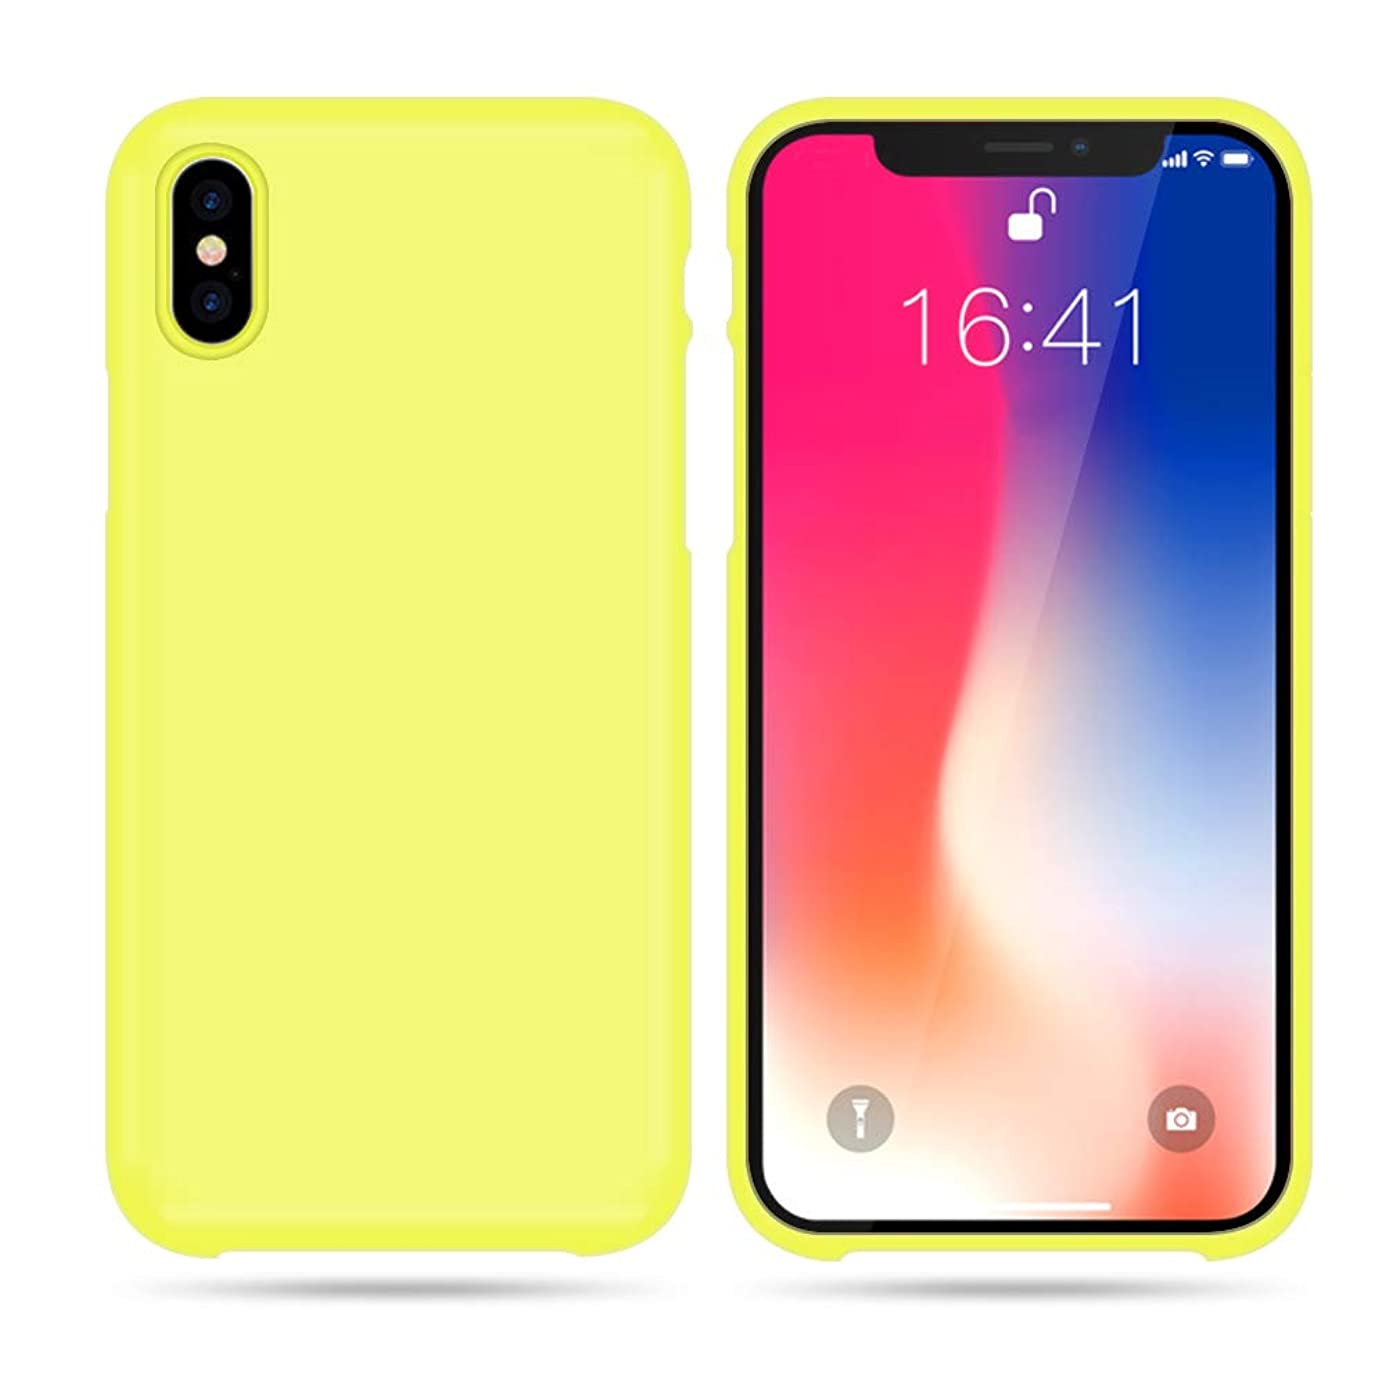 LOAZRE iPhone Xs Max Case,Liquid Silicone Gel Rubber Ultra Slim Fit Shockproof Cover with Soft Microfiber Cloth Cushion Compatible Apple iPhone Xs Max 6.5 Inch 2018 - Yellow